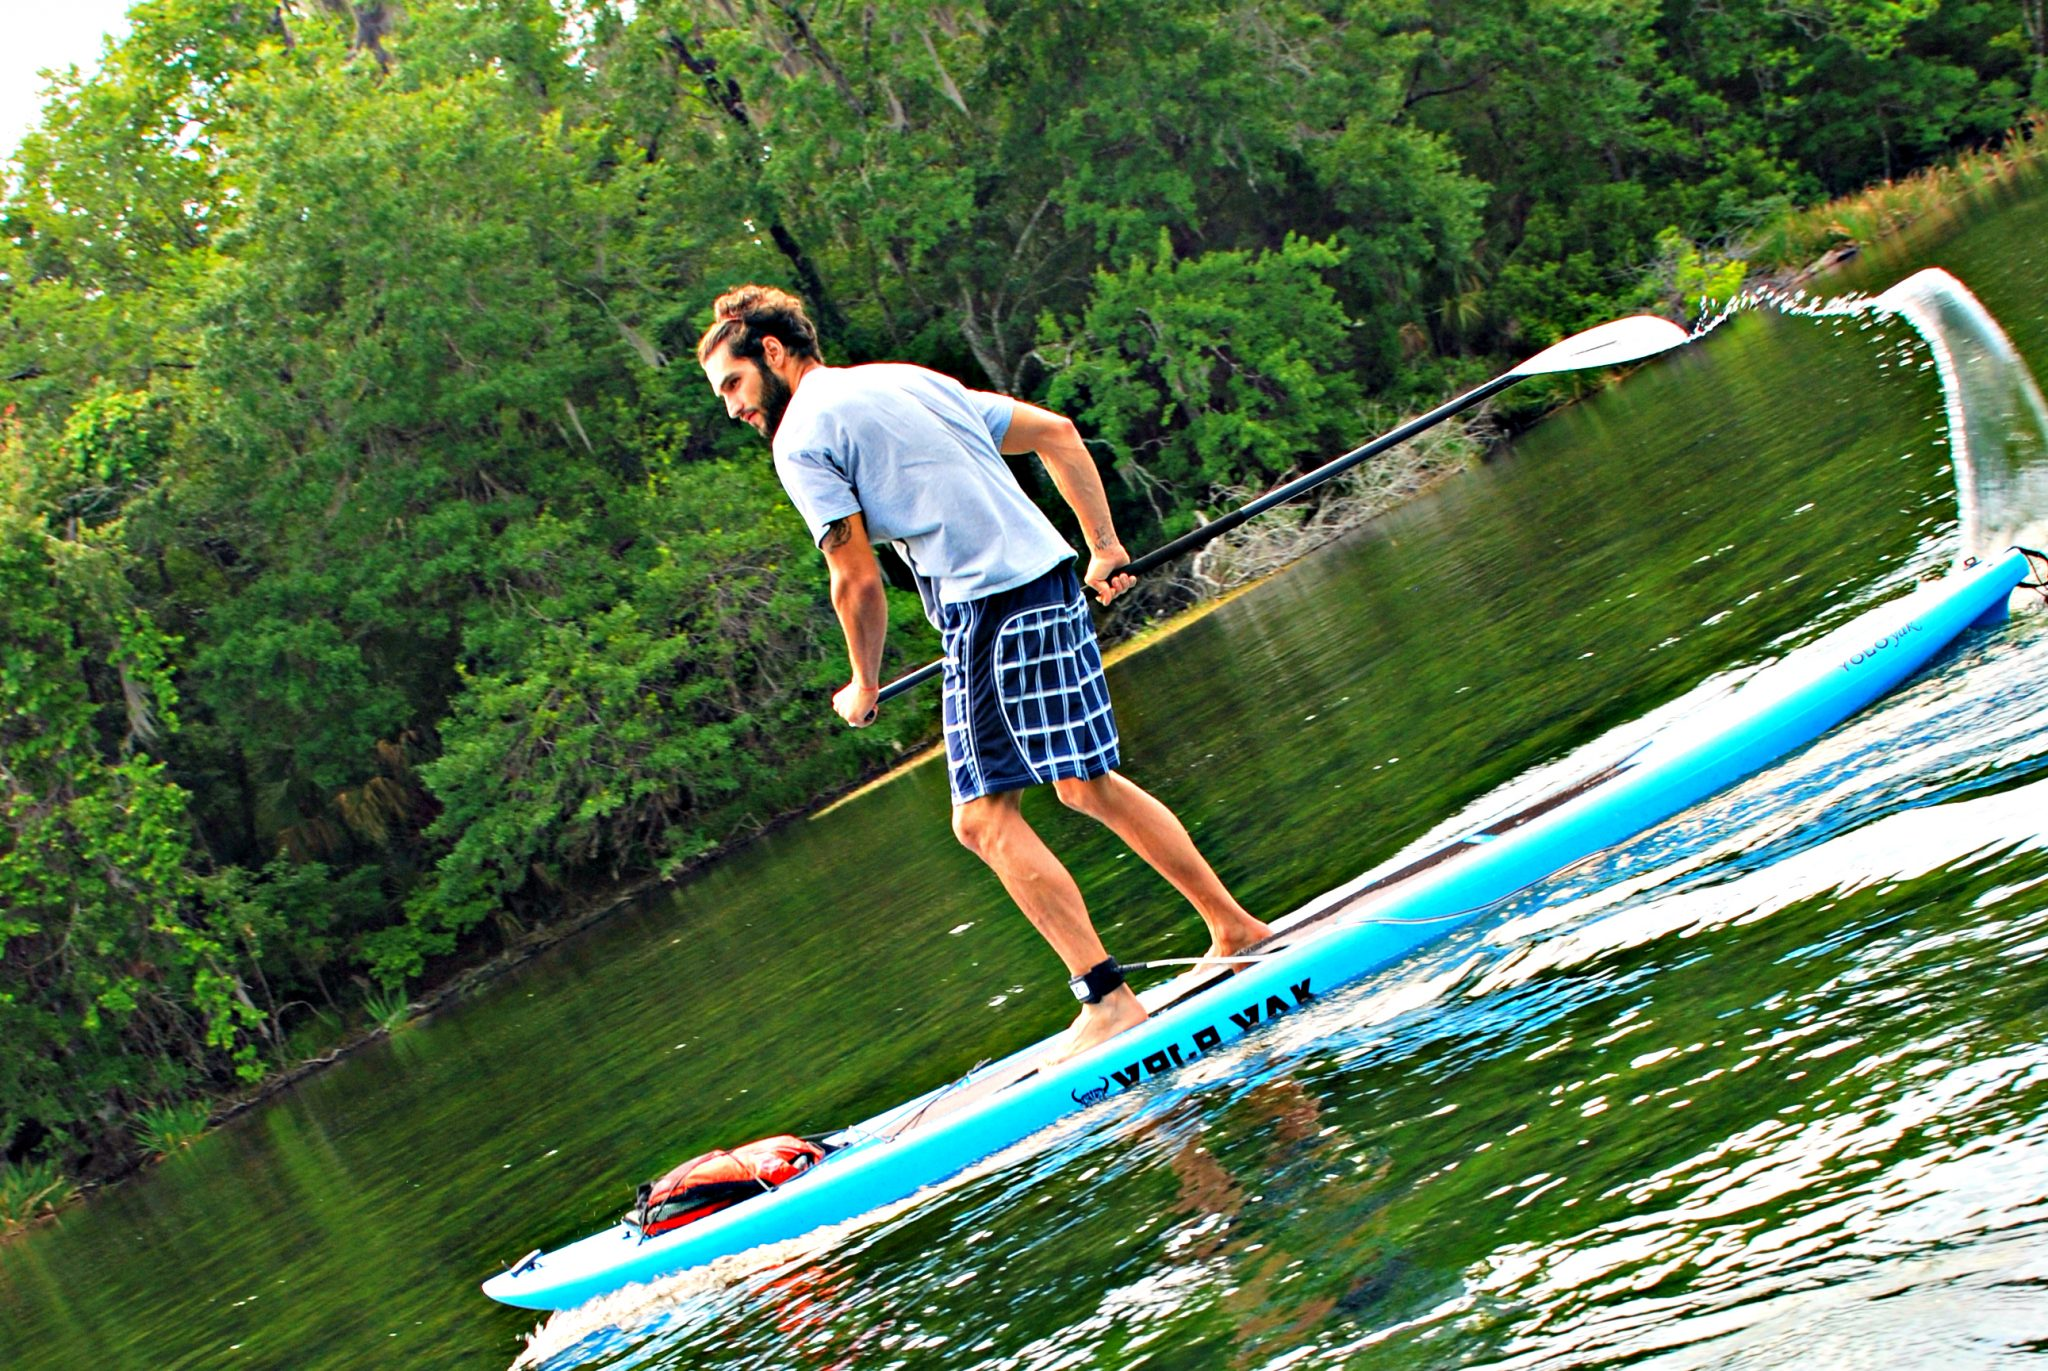 Watersports are plentiful in Ocala/Marion County Florida= Ocala Marion County Florida: Vacation Your Way in the Sunshine State #ad